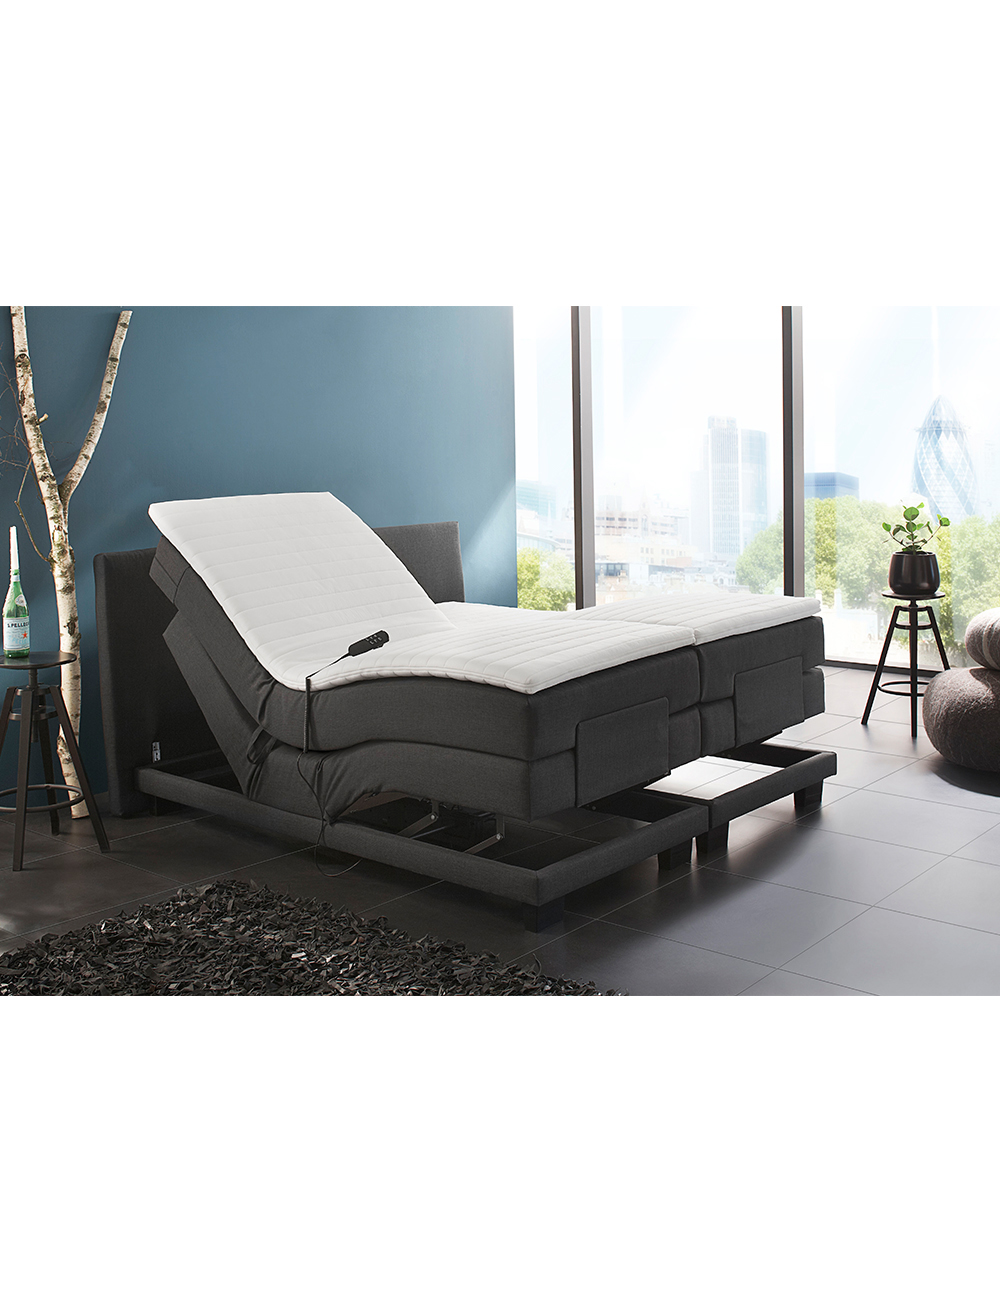 lit boxspring electrique s. Black Bedroom Furniture Sets. Home Design Ideas